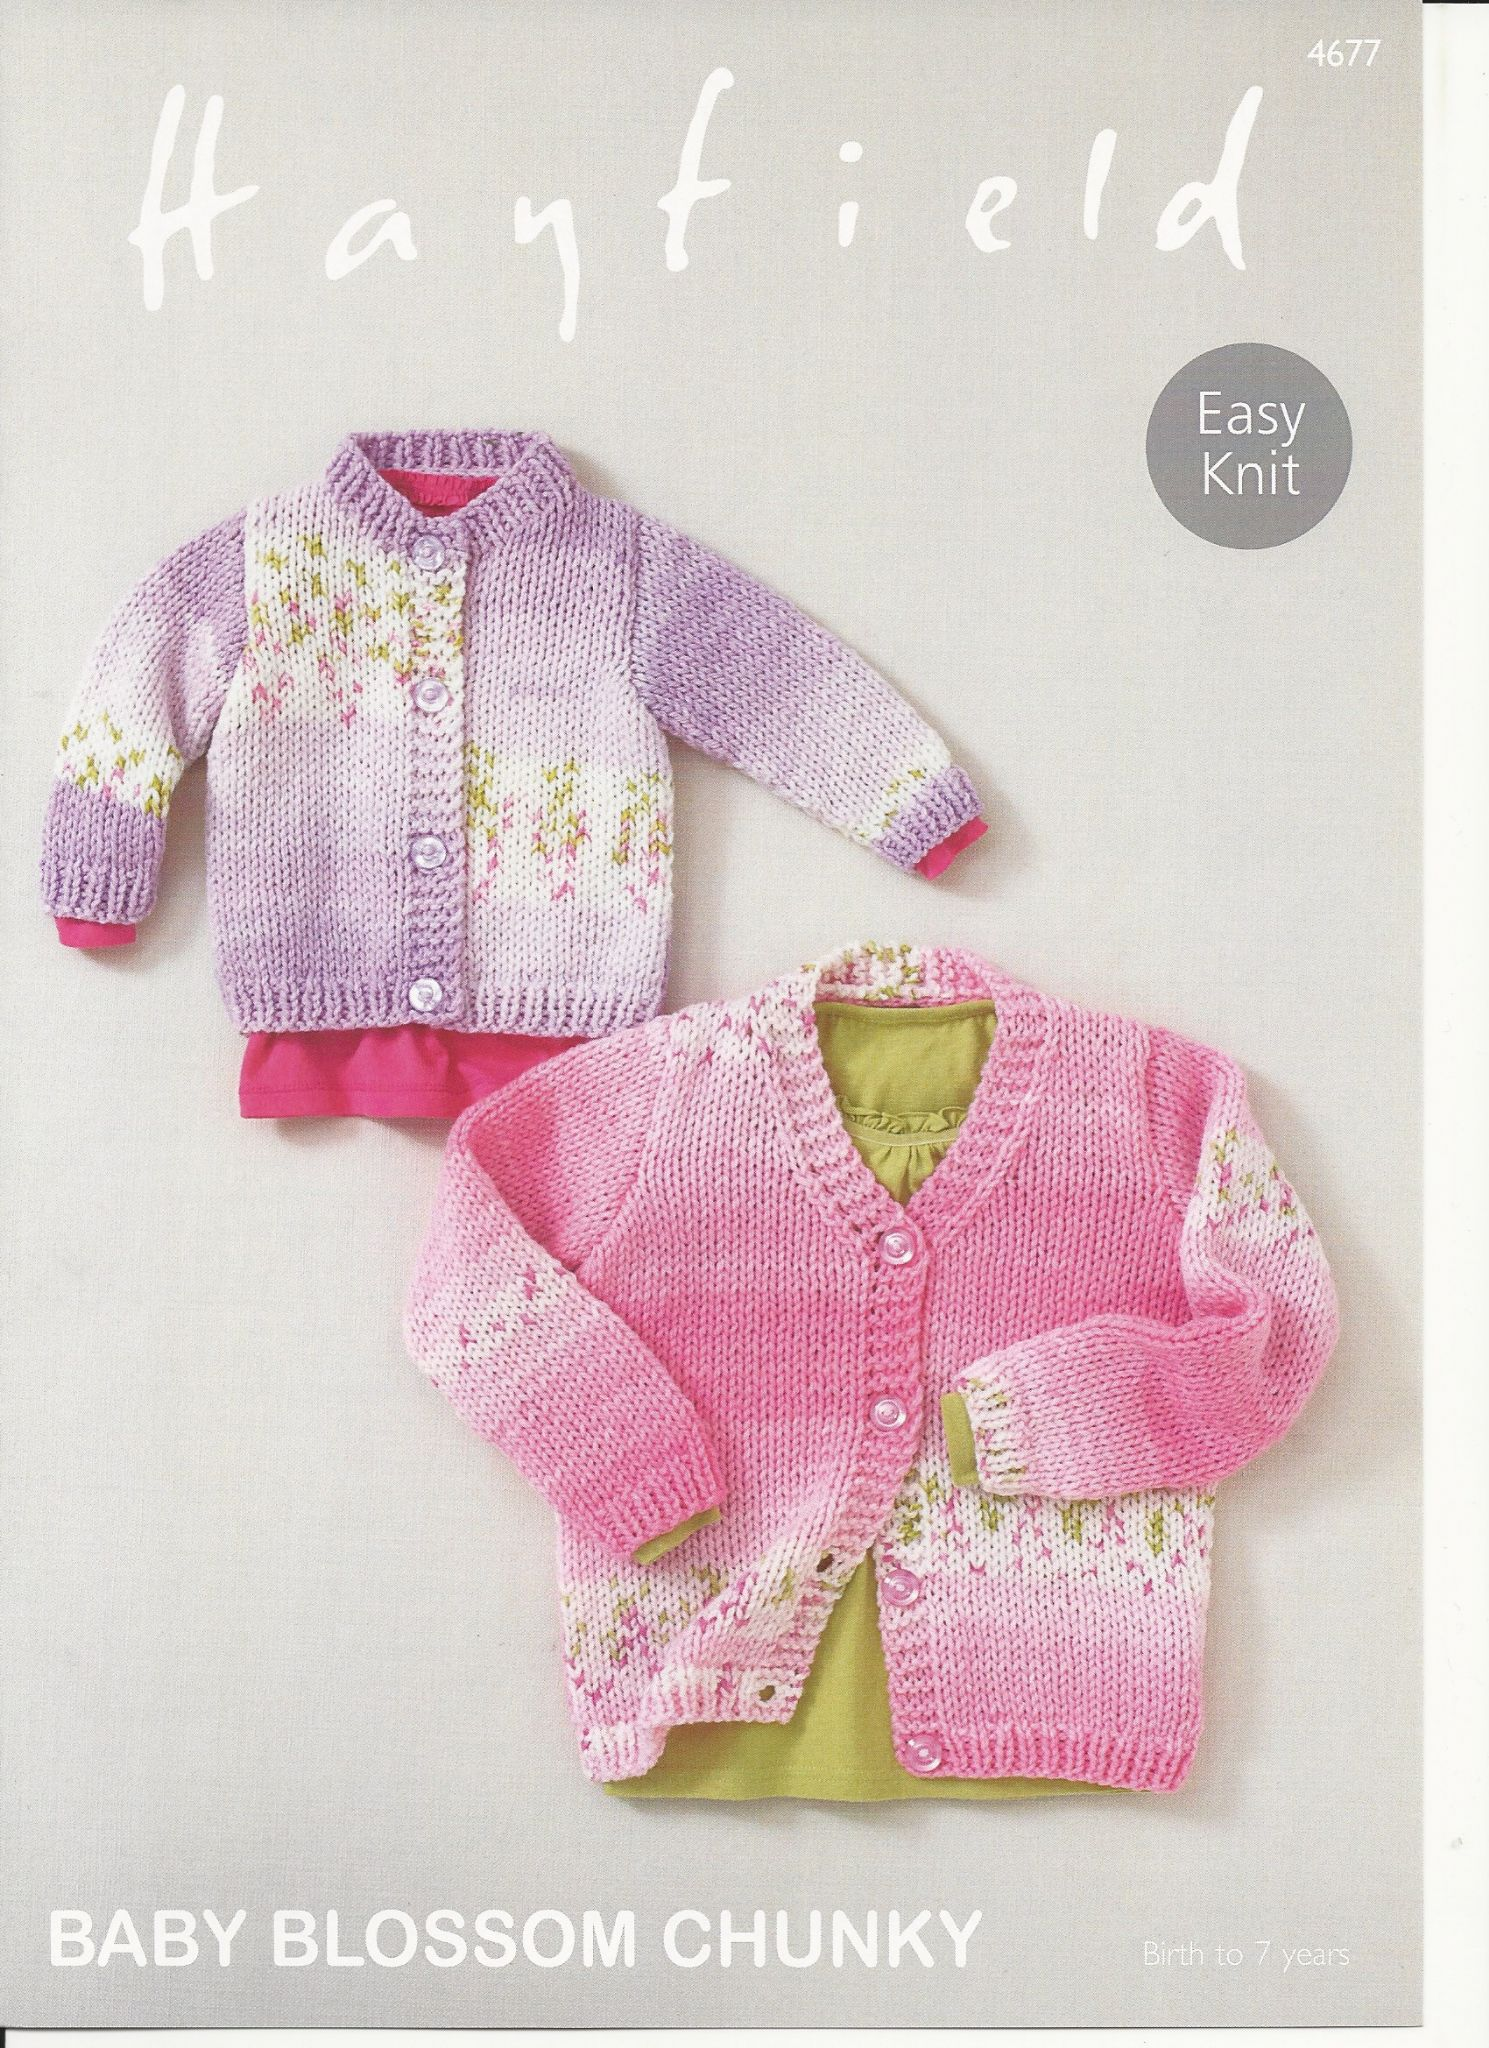 Hayfield Babies Cardigans Knitting Pattern in Baby Blossom Chunky 4677